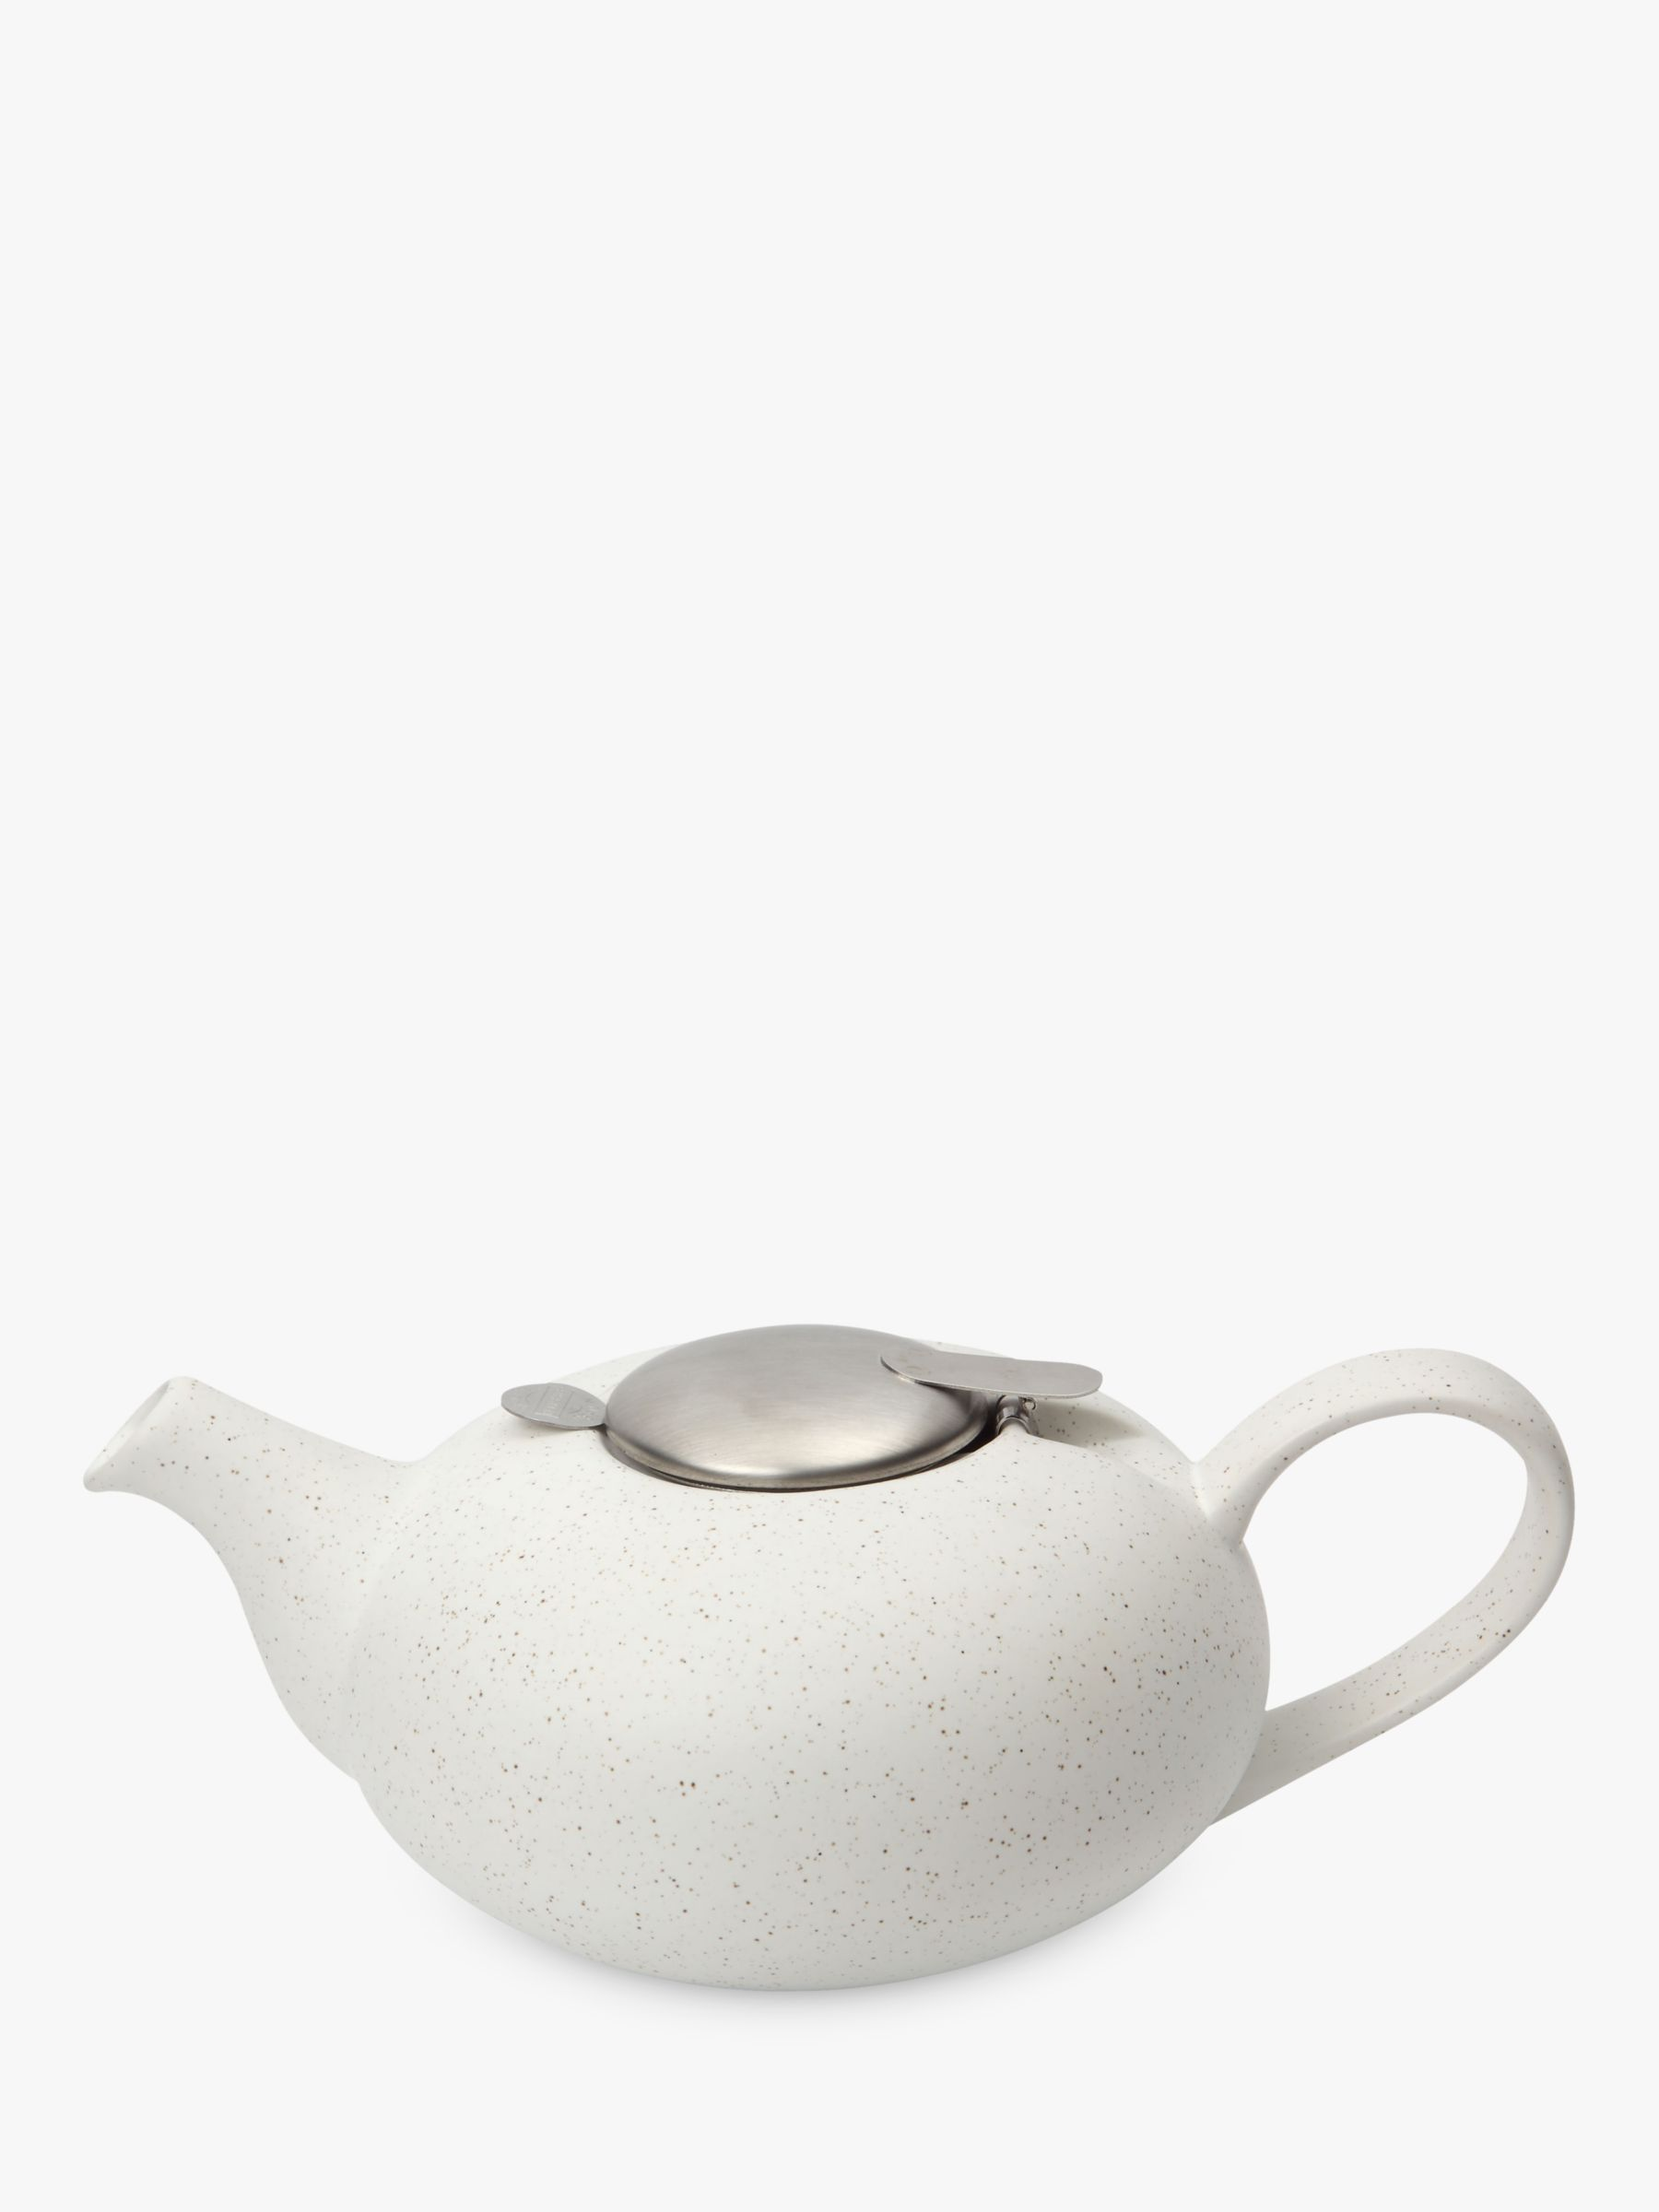 London Pottery London Pottery Speckled Pebble Teapot, 4 Cup, White